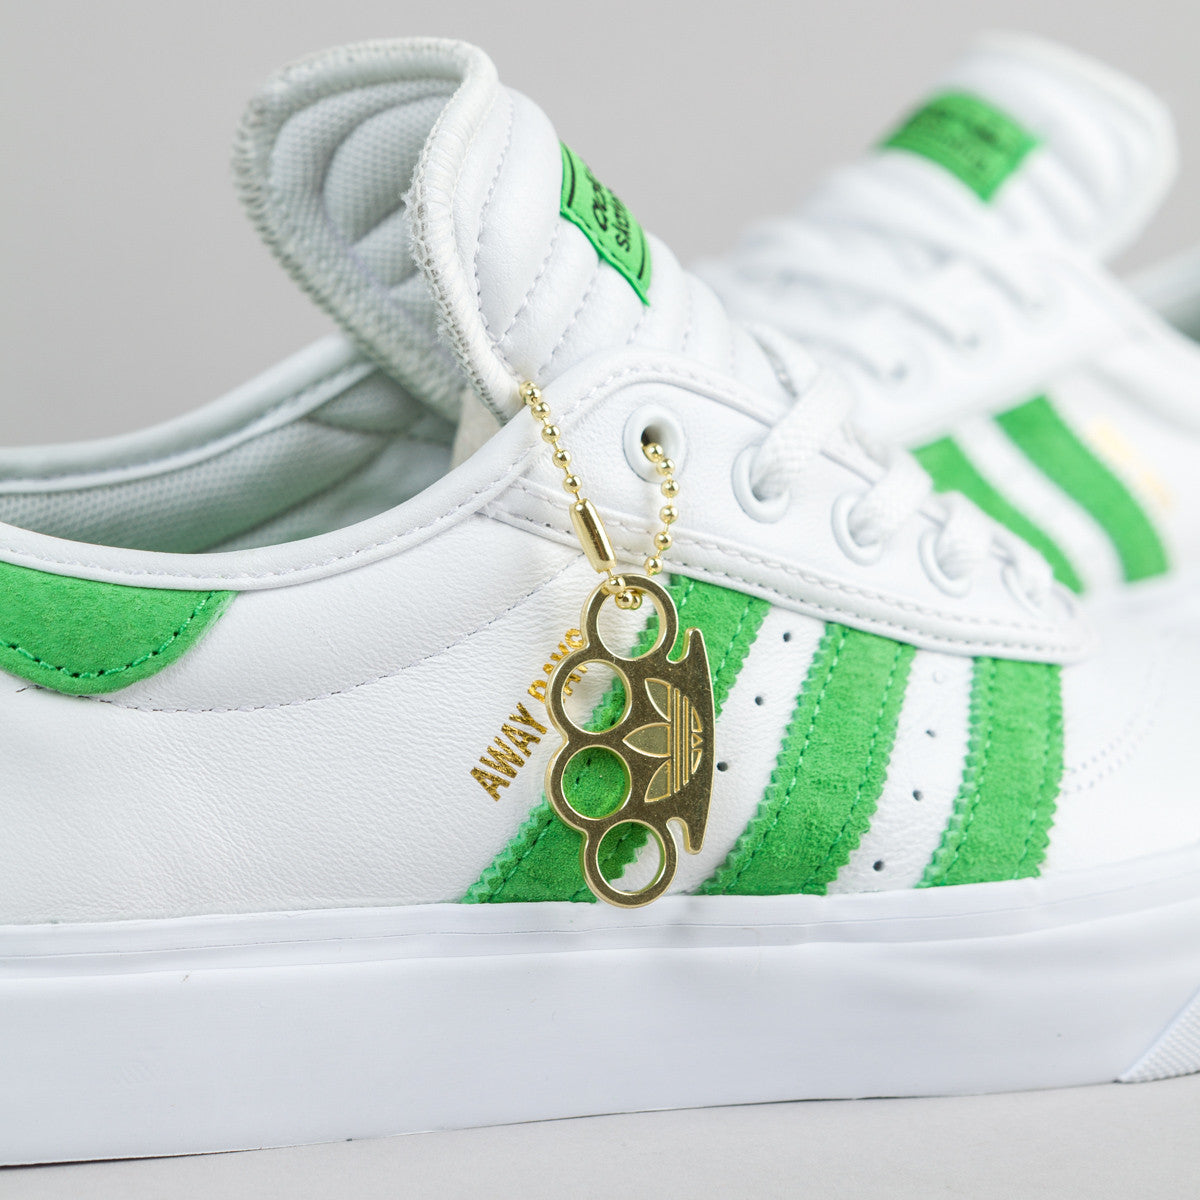 Adidas Adi-Ease Premiere Away Days Shoes - White / Lime / Gum